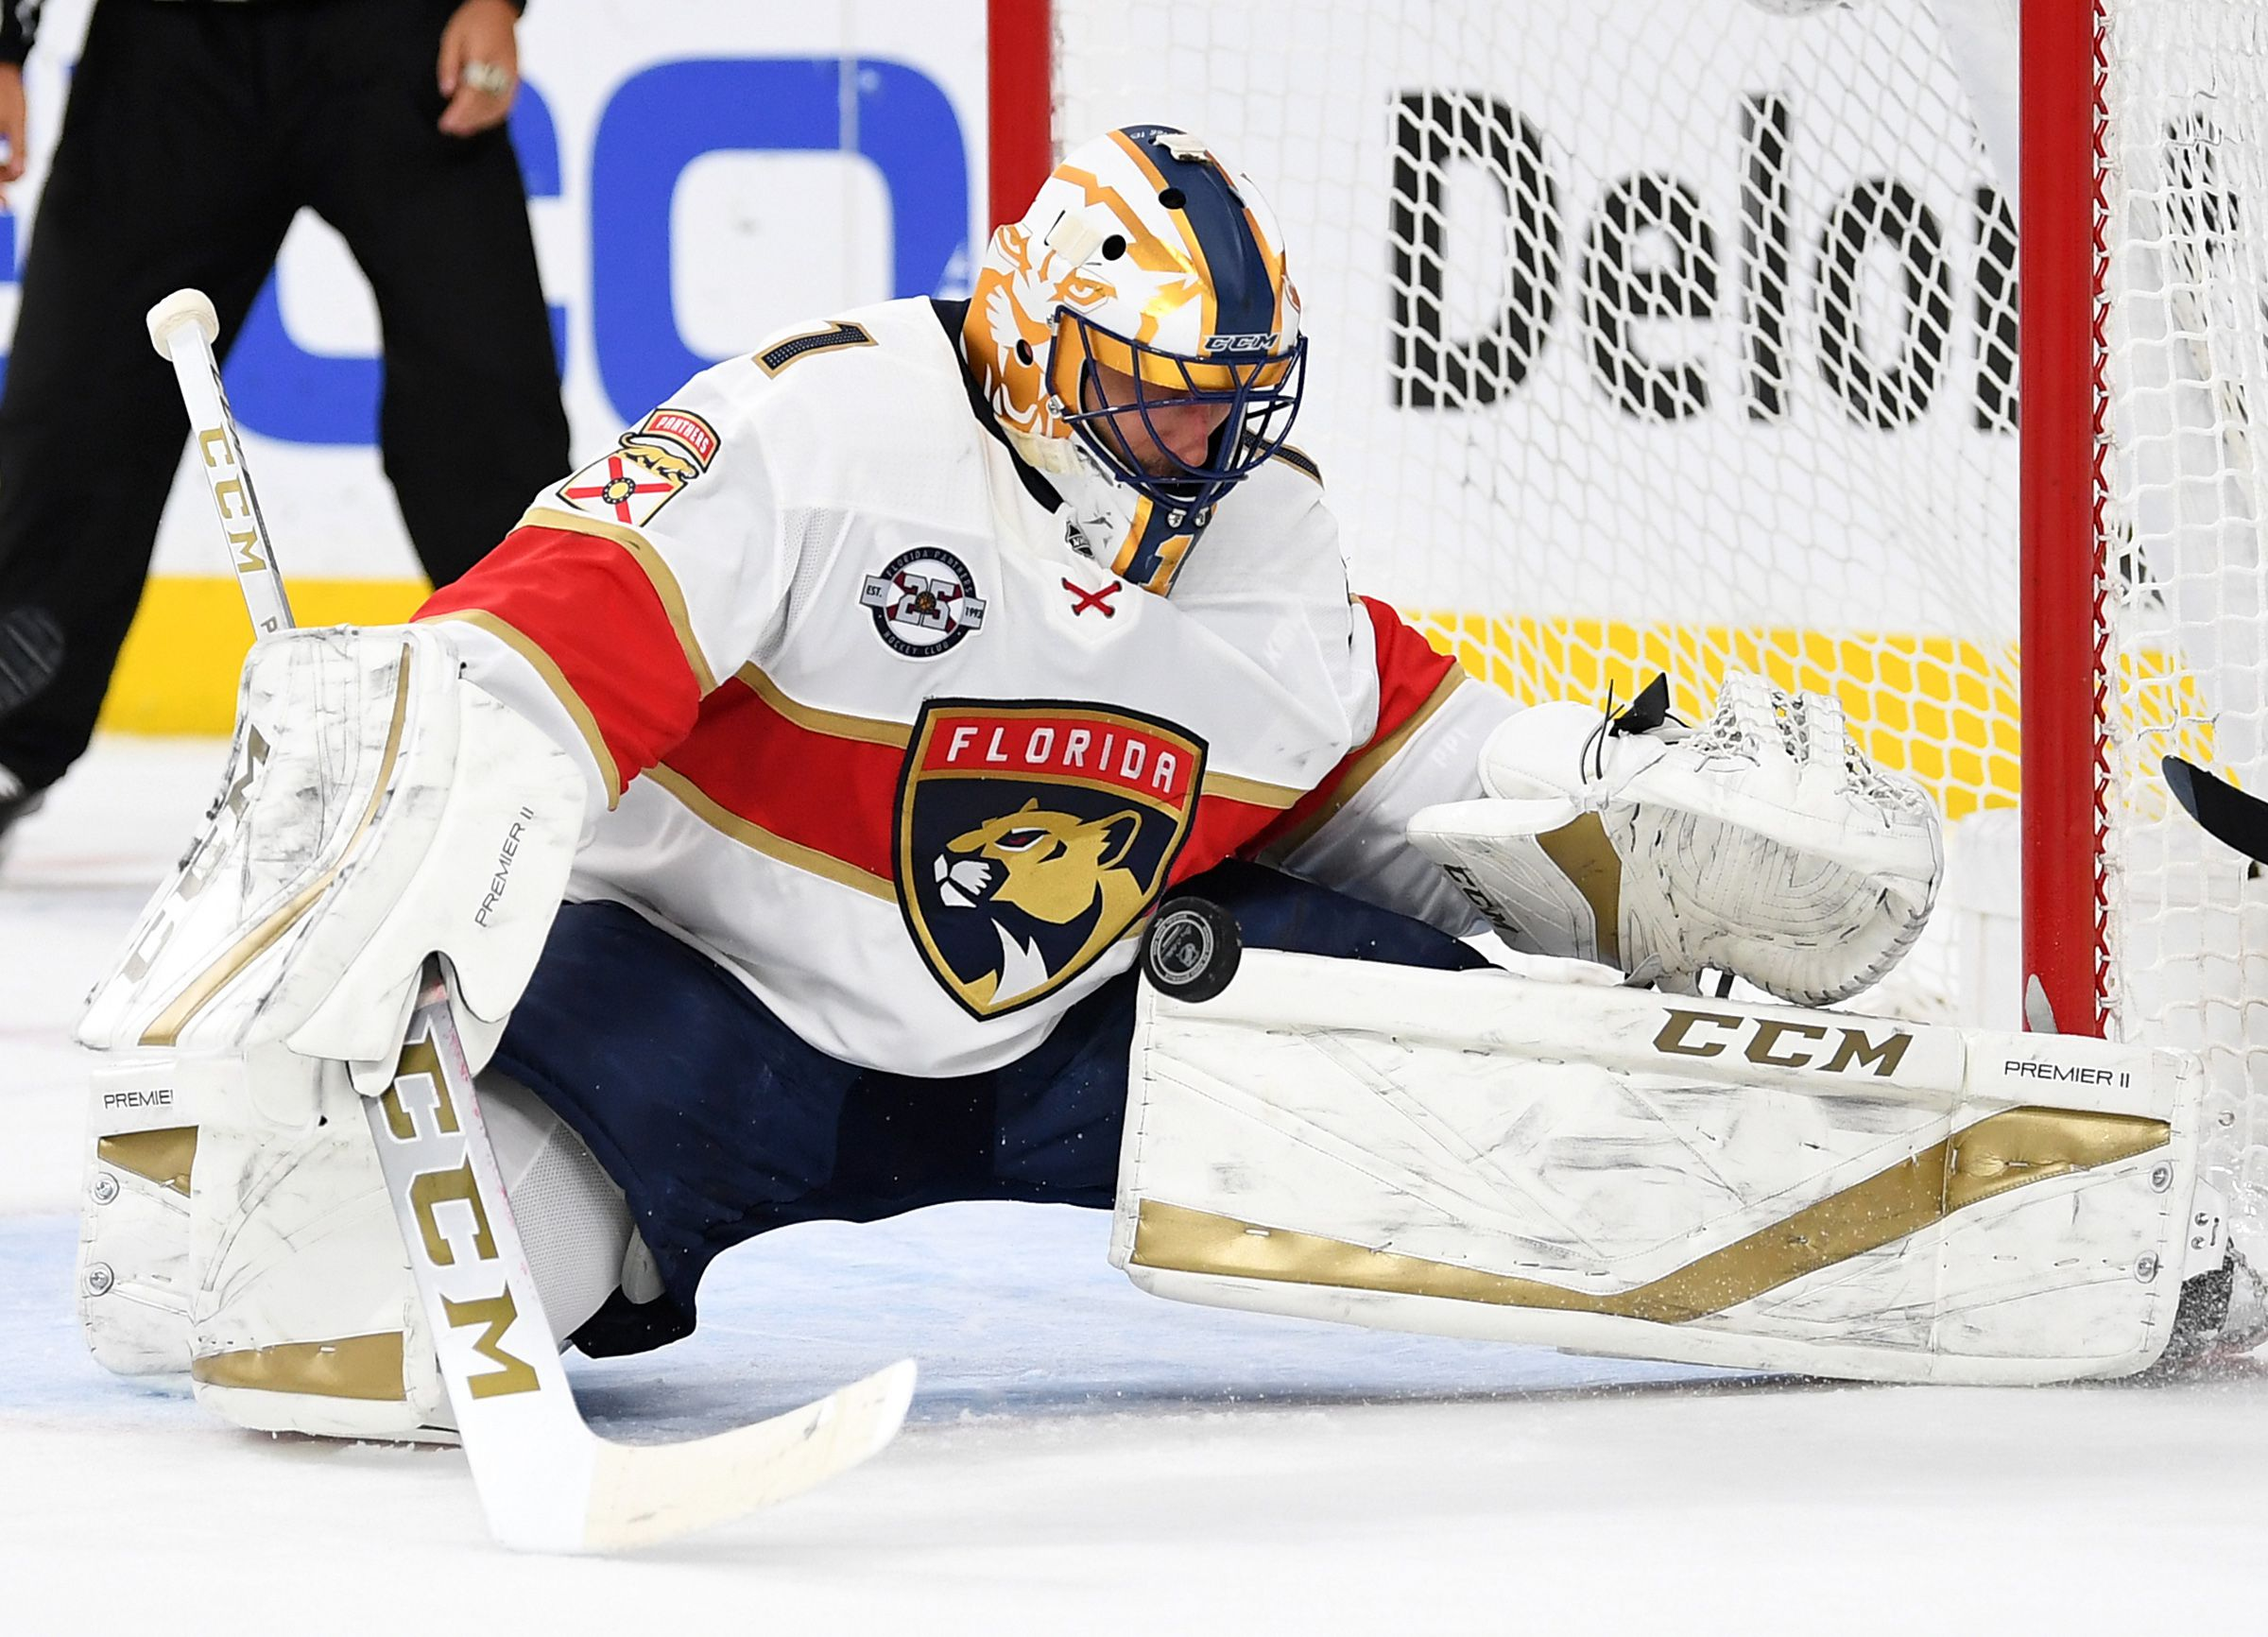 Panthers Goaltender Roberto Luongo Announces Retirement After 19